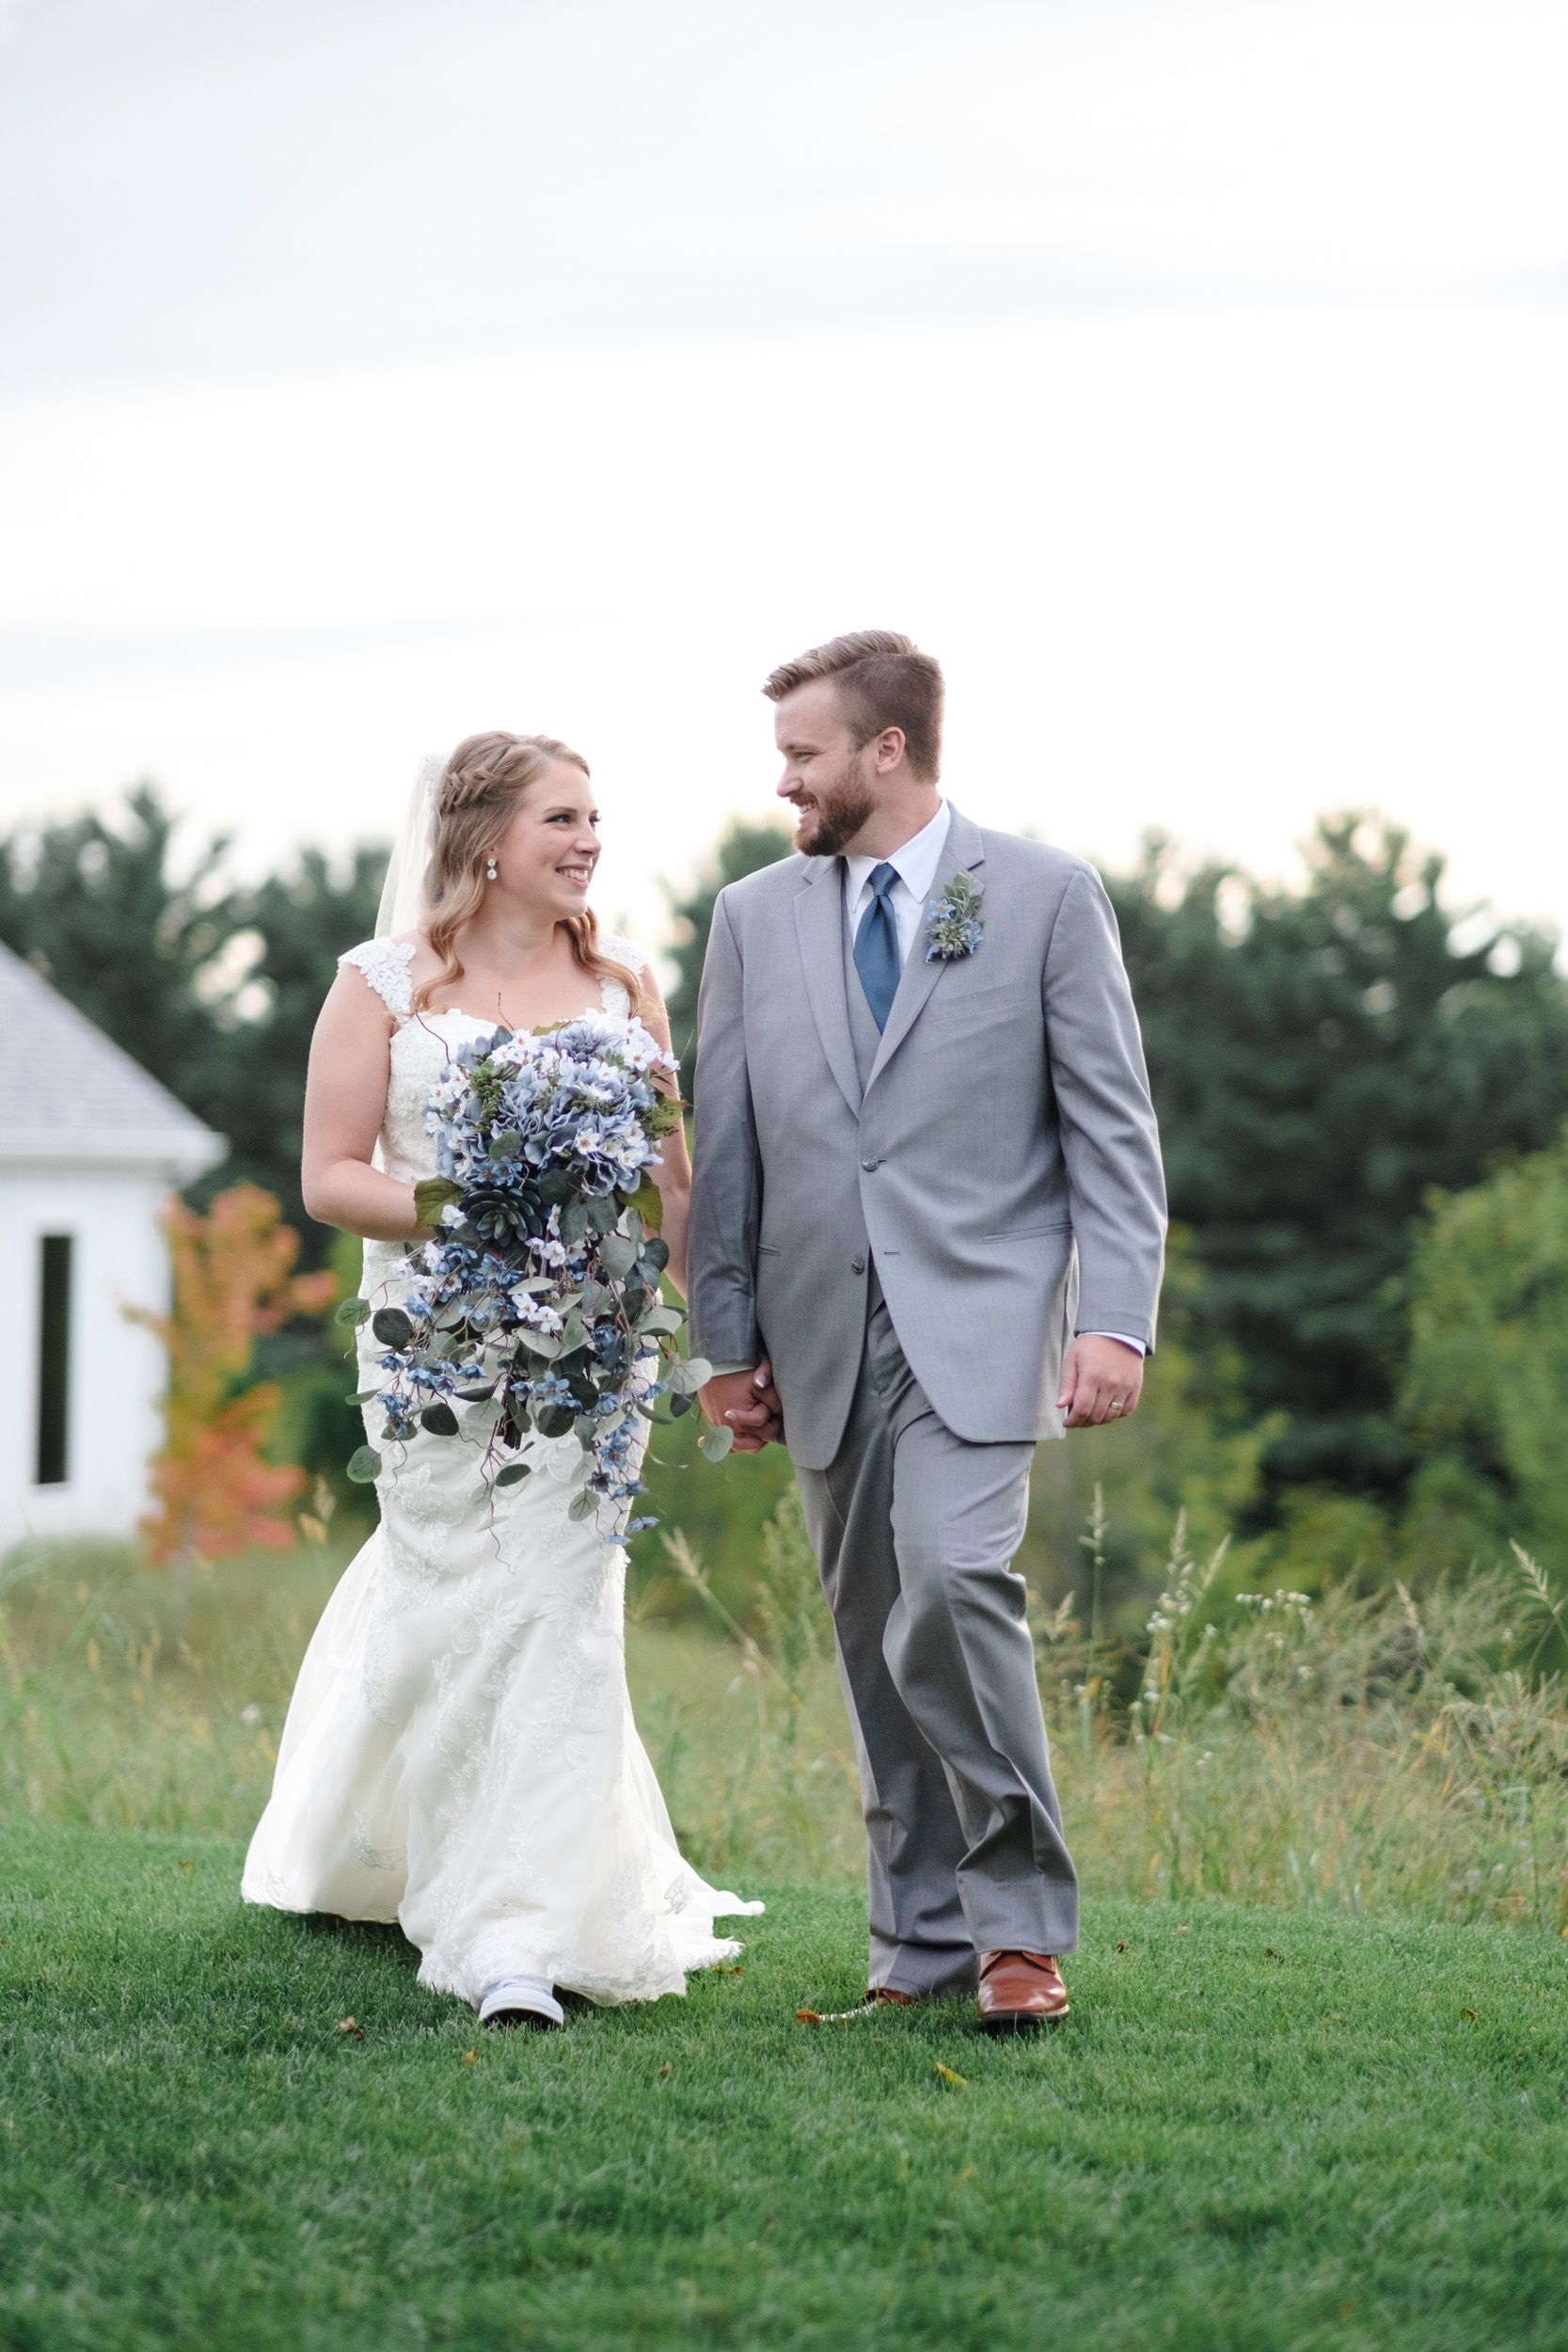 Couple holds hands and joyfully runs smiling and laughing at The Fields Reserve in Stoughton on their wedding day